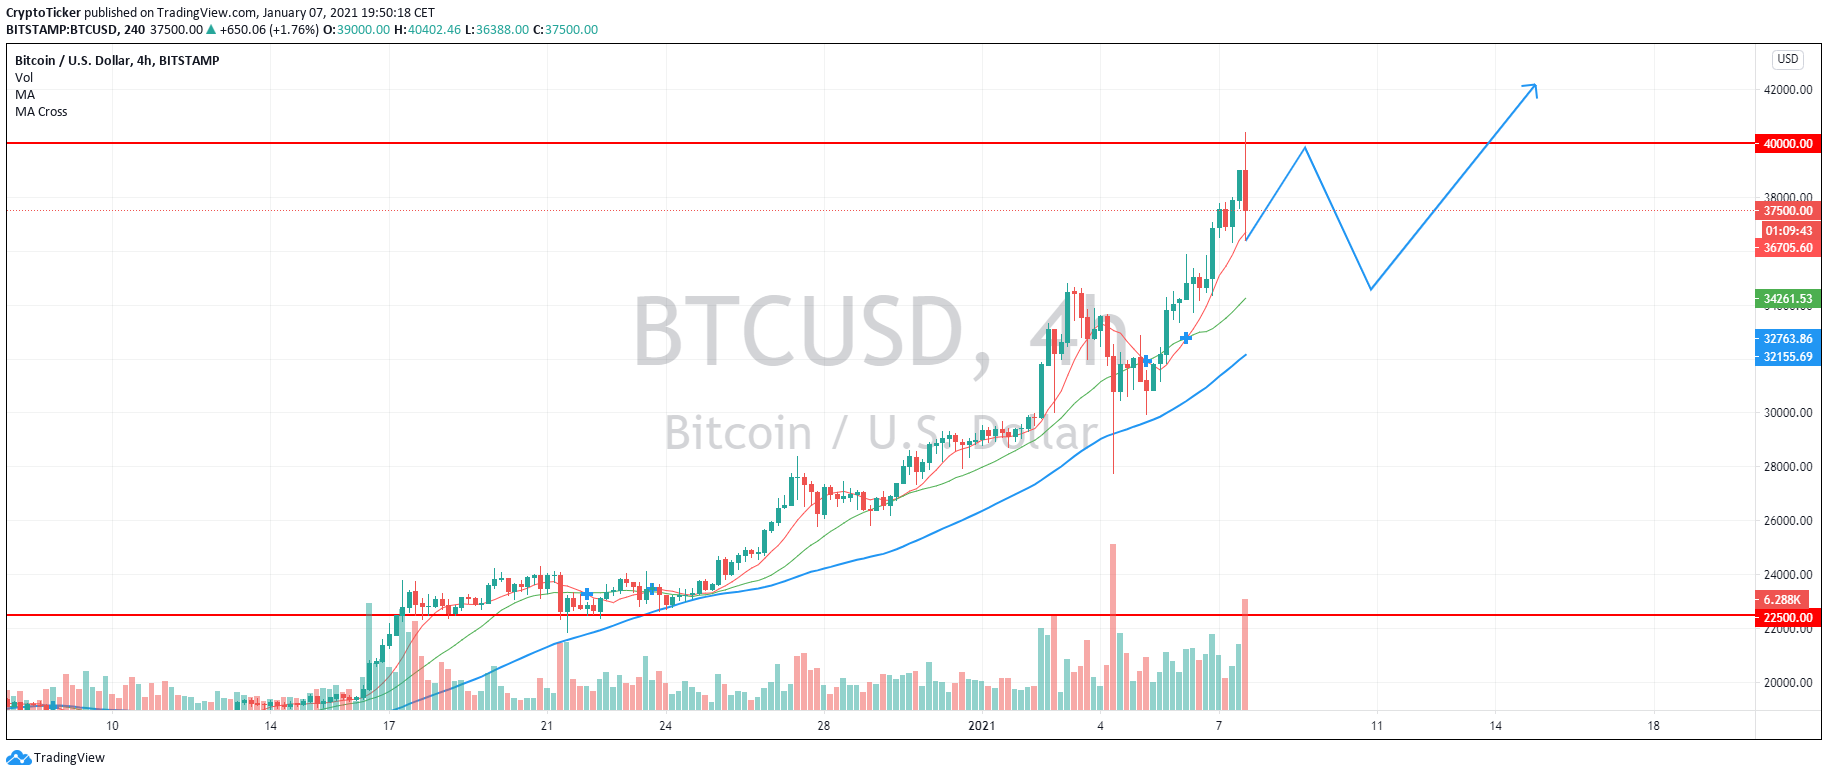 BTC/USD 4-hour chart showing a correction after reaching 40k